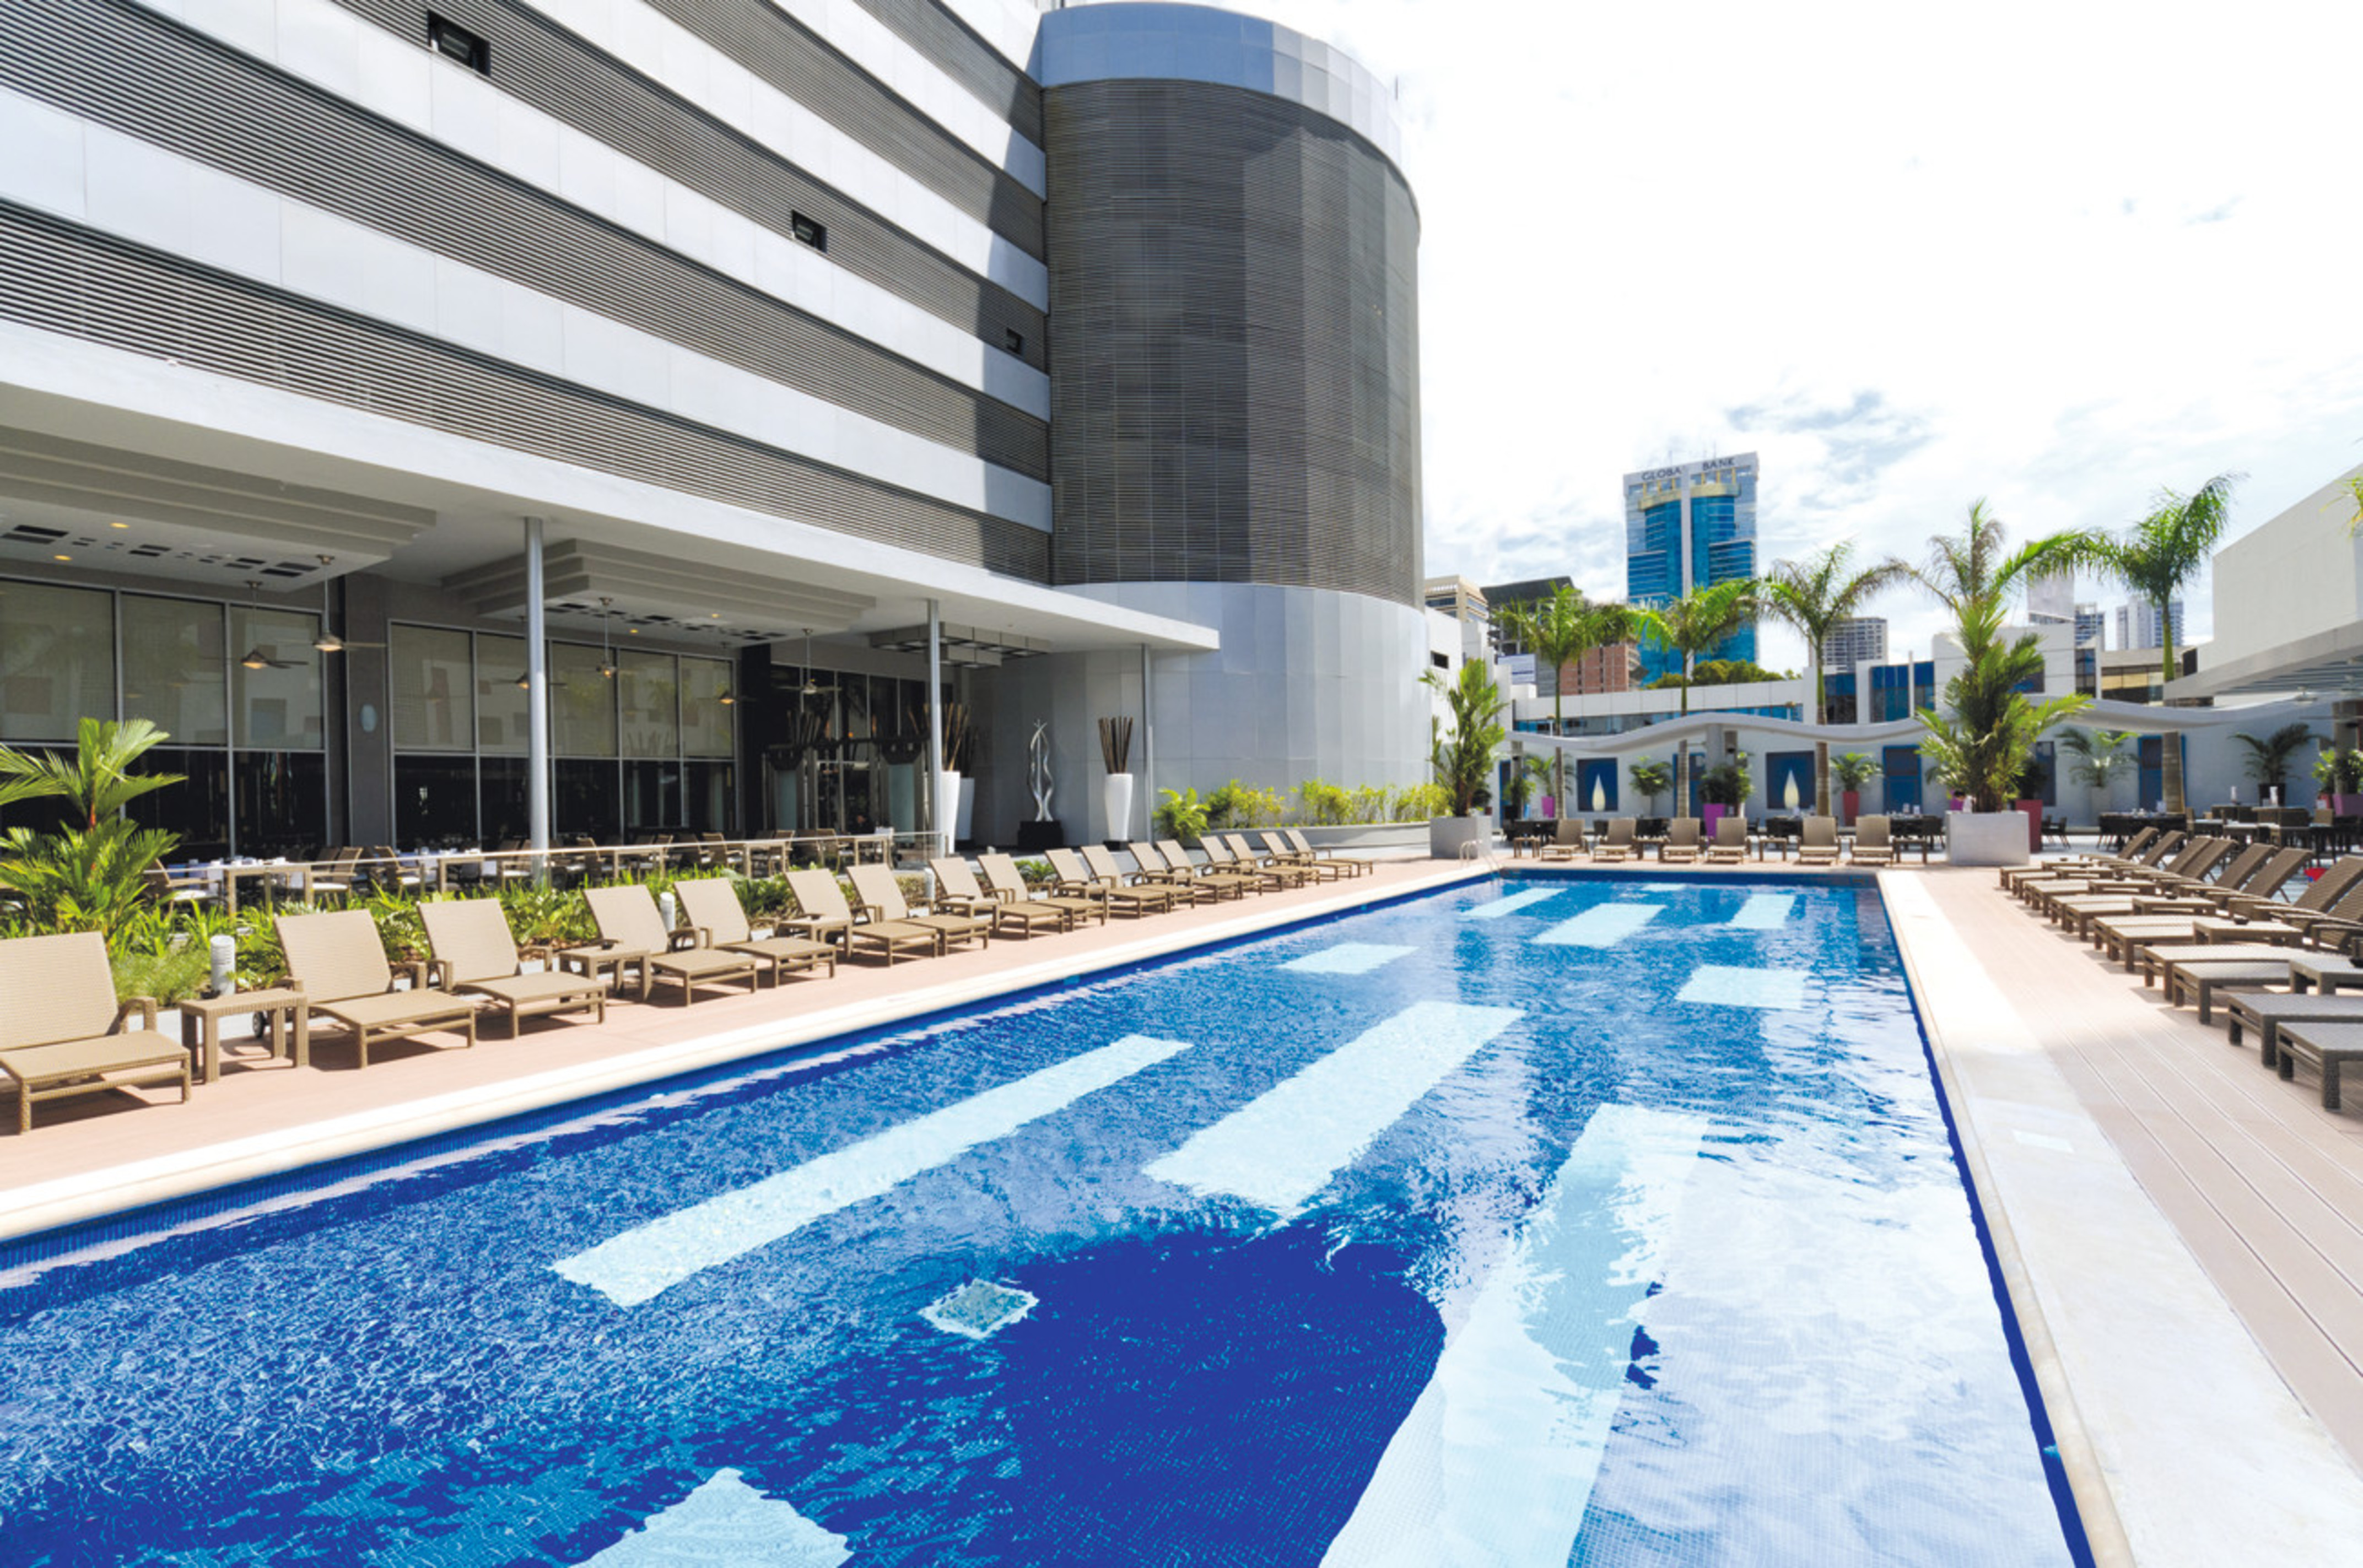 Hoteles Piscina The Hotel Riu Plaza Panama Has Everything You Need For A